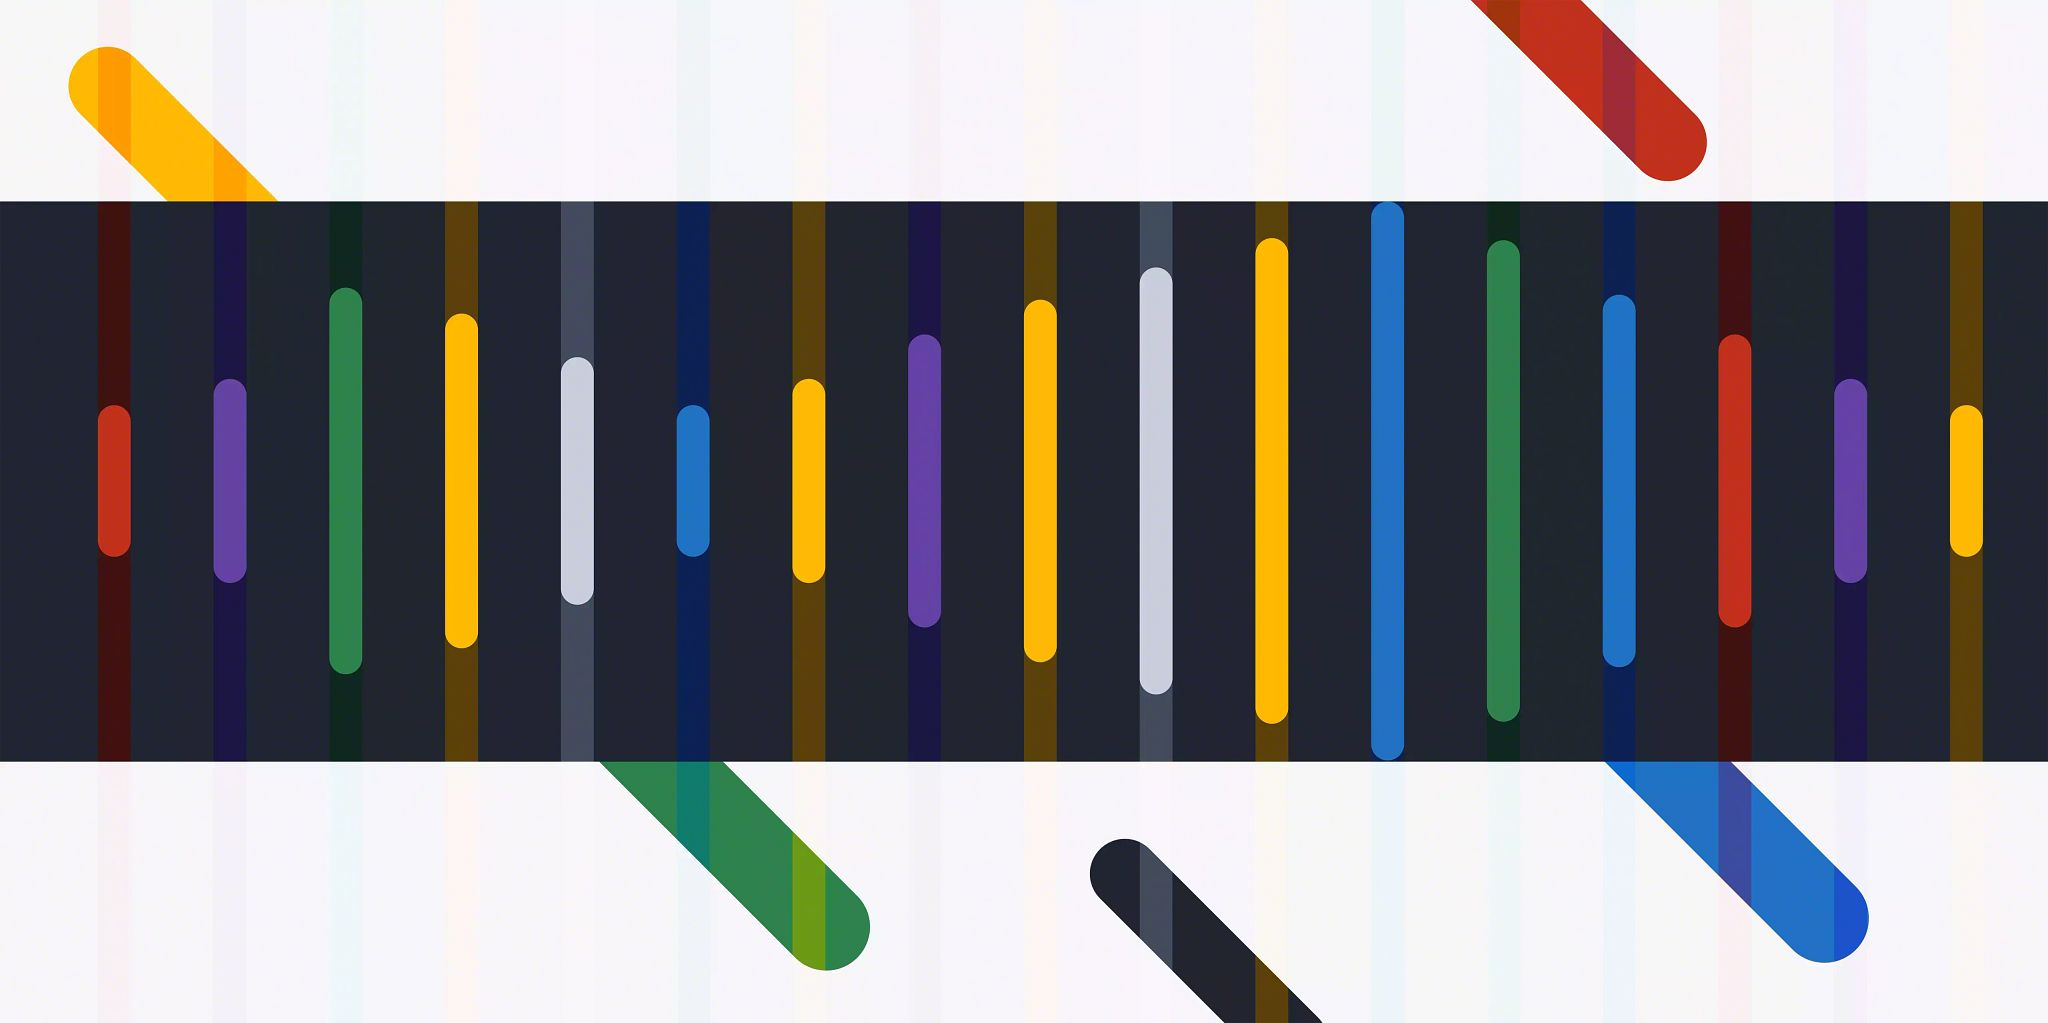 The background of the image is  five narrow, solid colored lines coming through the graphic diagonally from the upper left to the bottom right. In the foreground running across the graphic from left to right taking up the full width and 1/2 of the vertical space starting one forth of the way down the image is a semi-transparent black frame with narrow, solid lines in varying heights shaped the represent a sound wave.